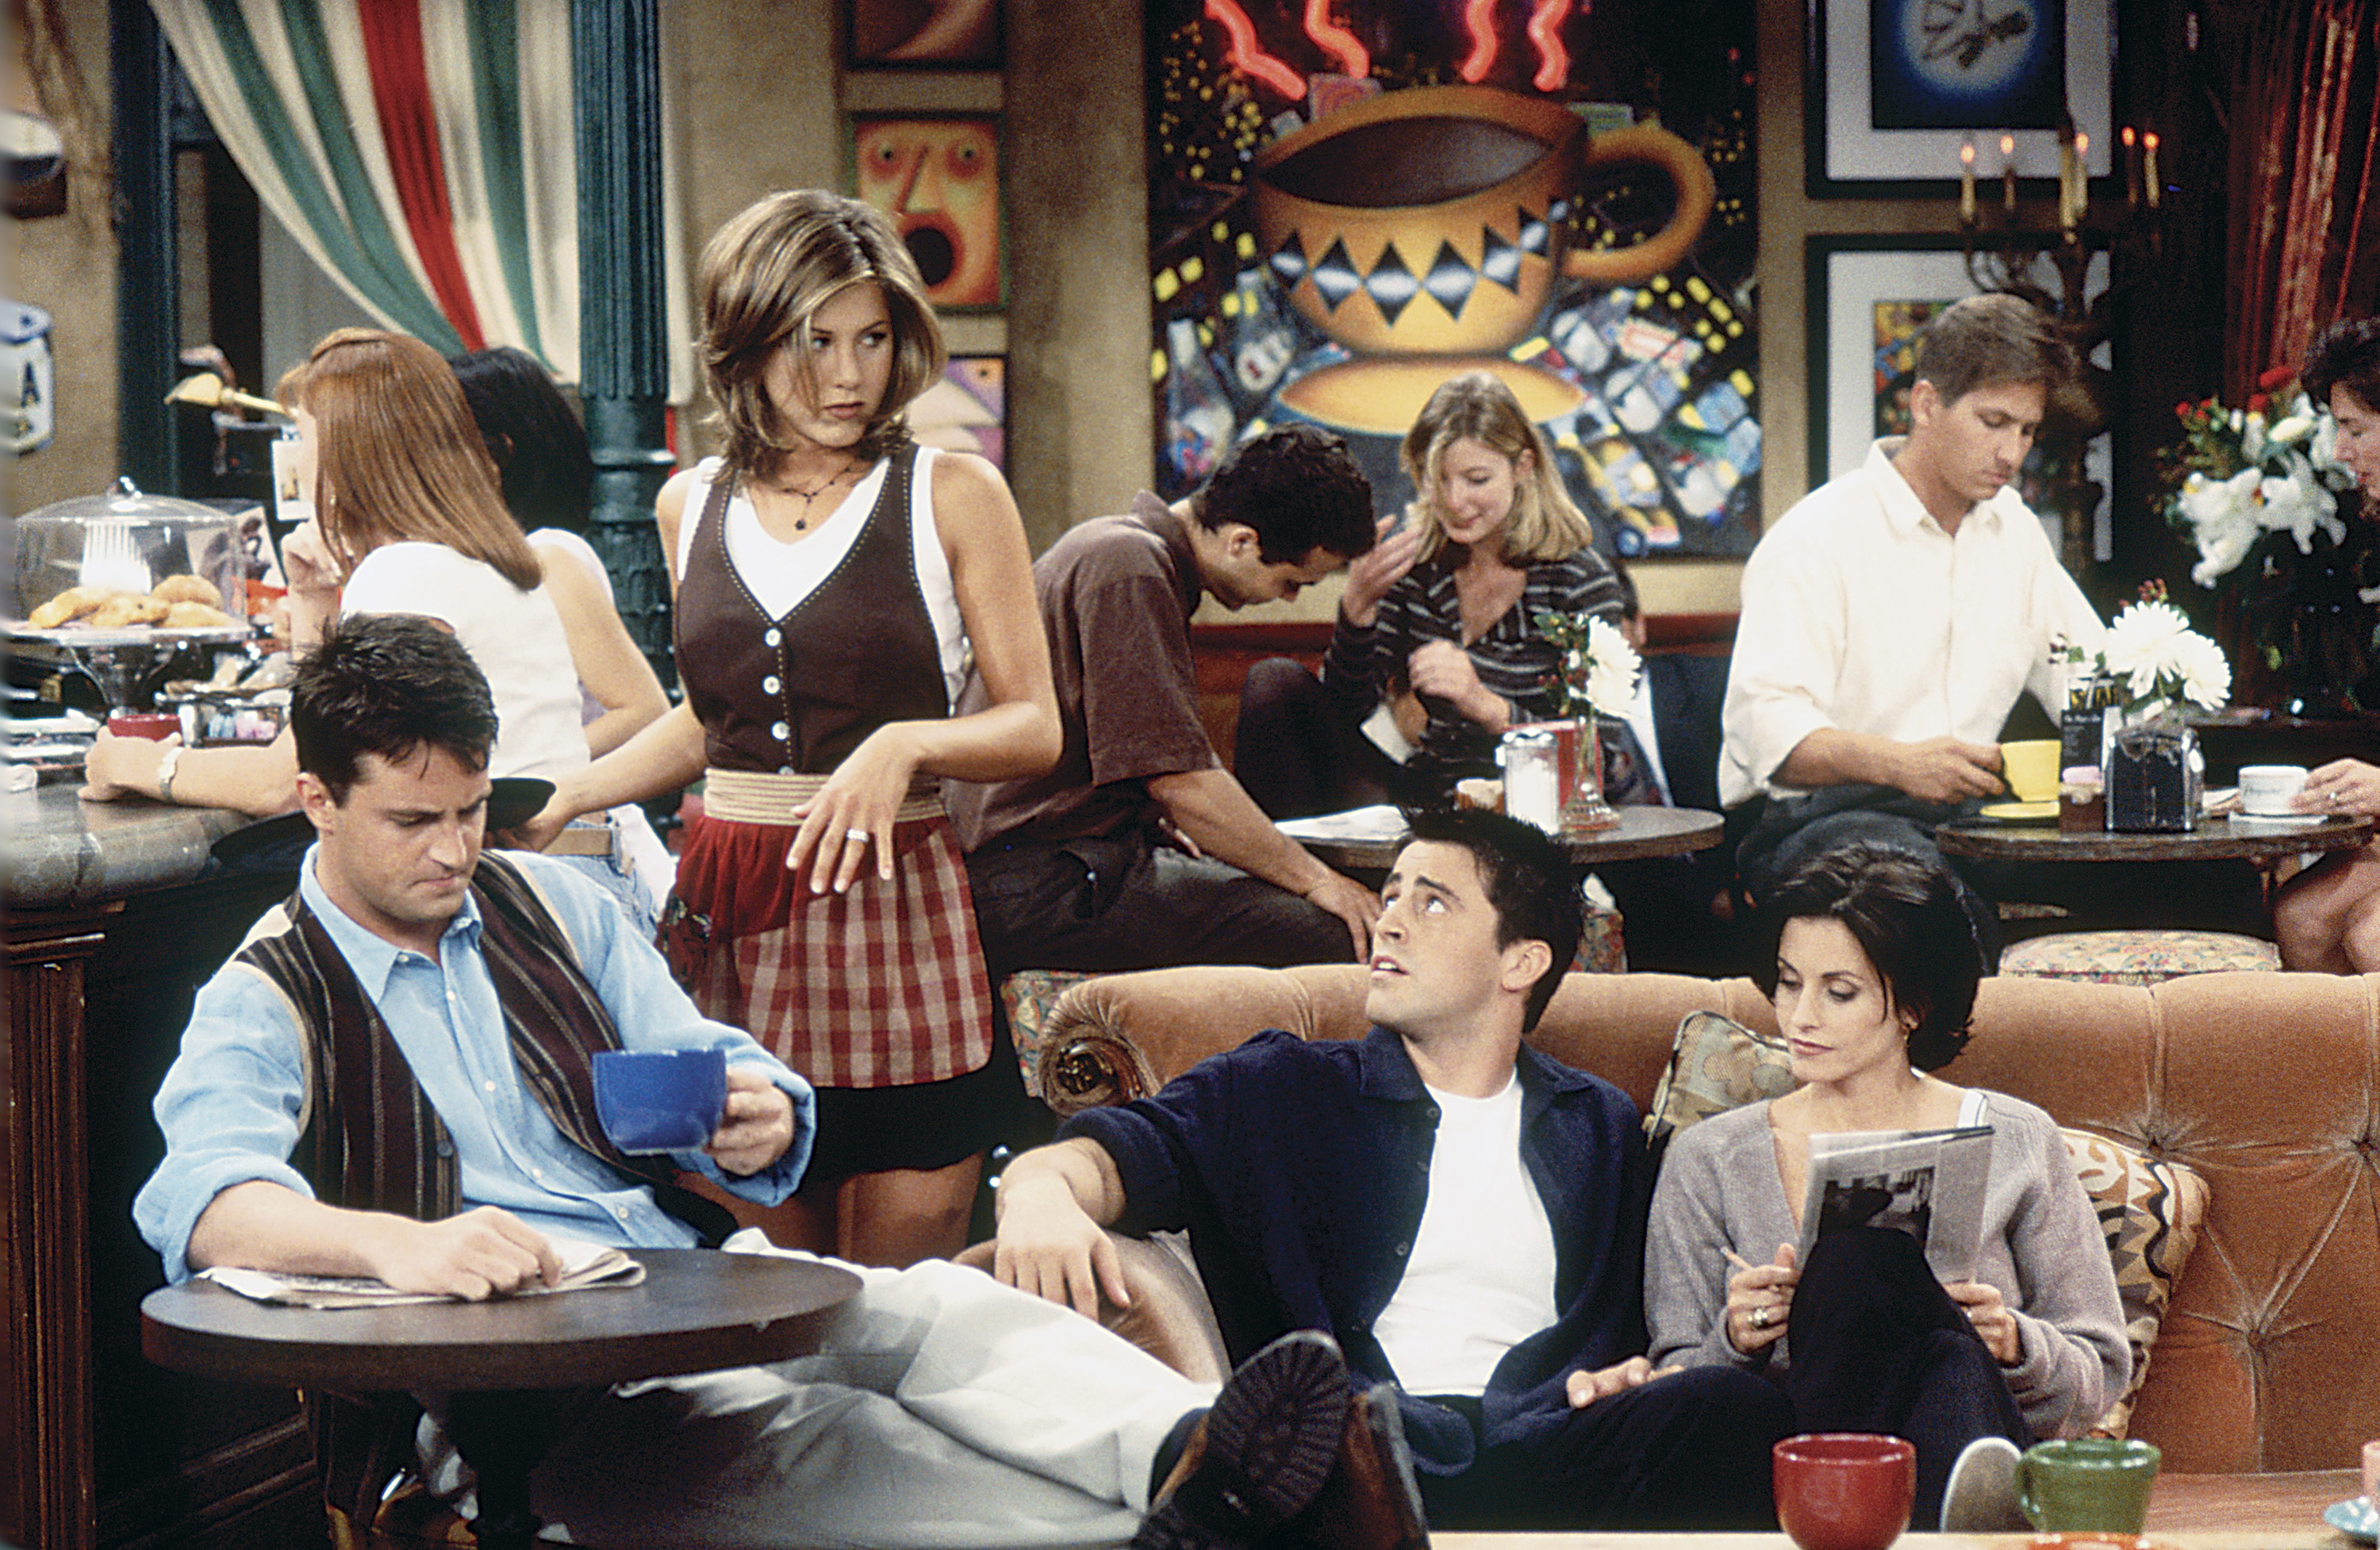 Could a Friends reunion movie be anymore pointless!?